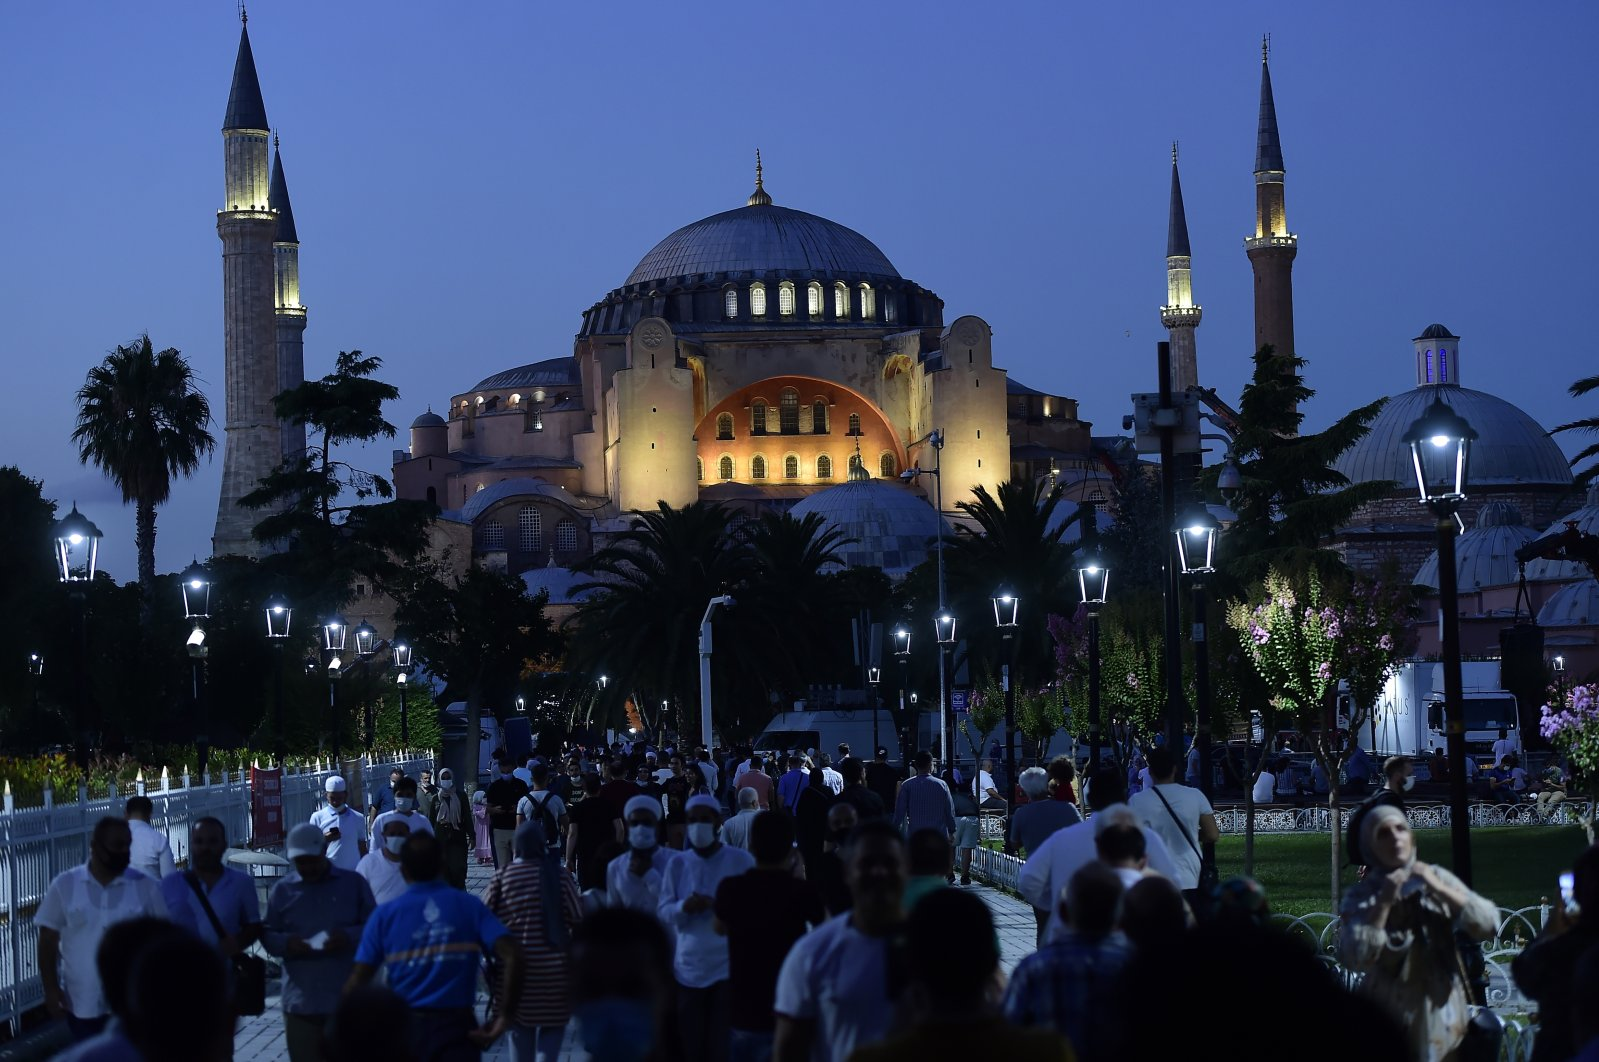 People walk backdropped by the Byzantine-era Hagia Sophia, in the historic Sultanahmet district of Istanbul, July 24, 2020. (AP Photo)